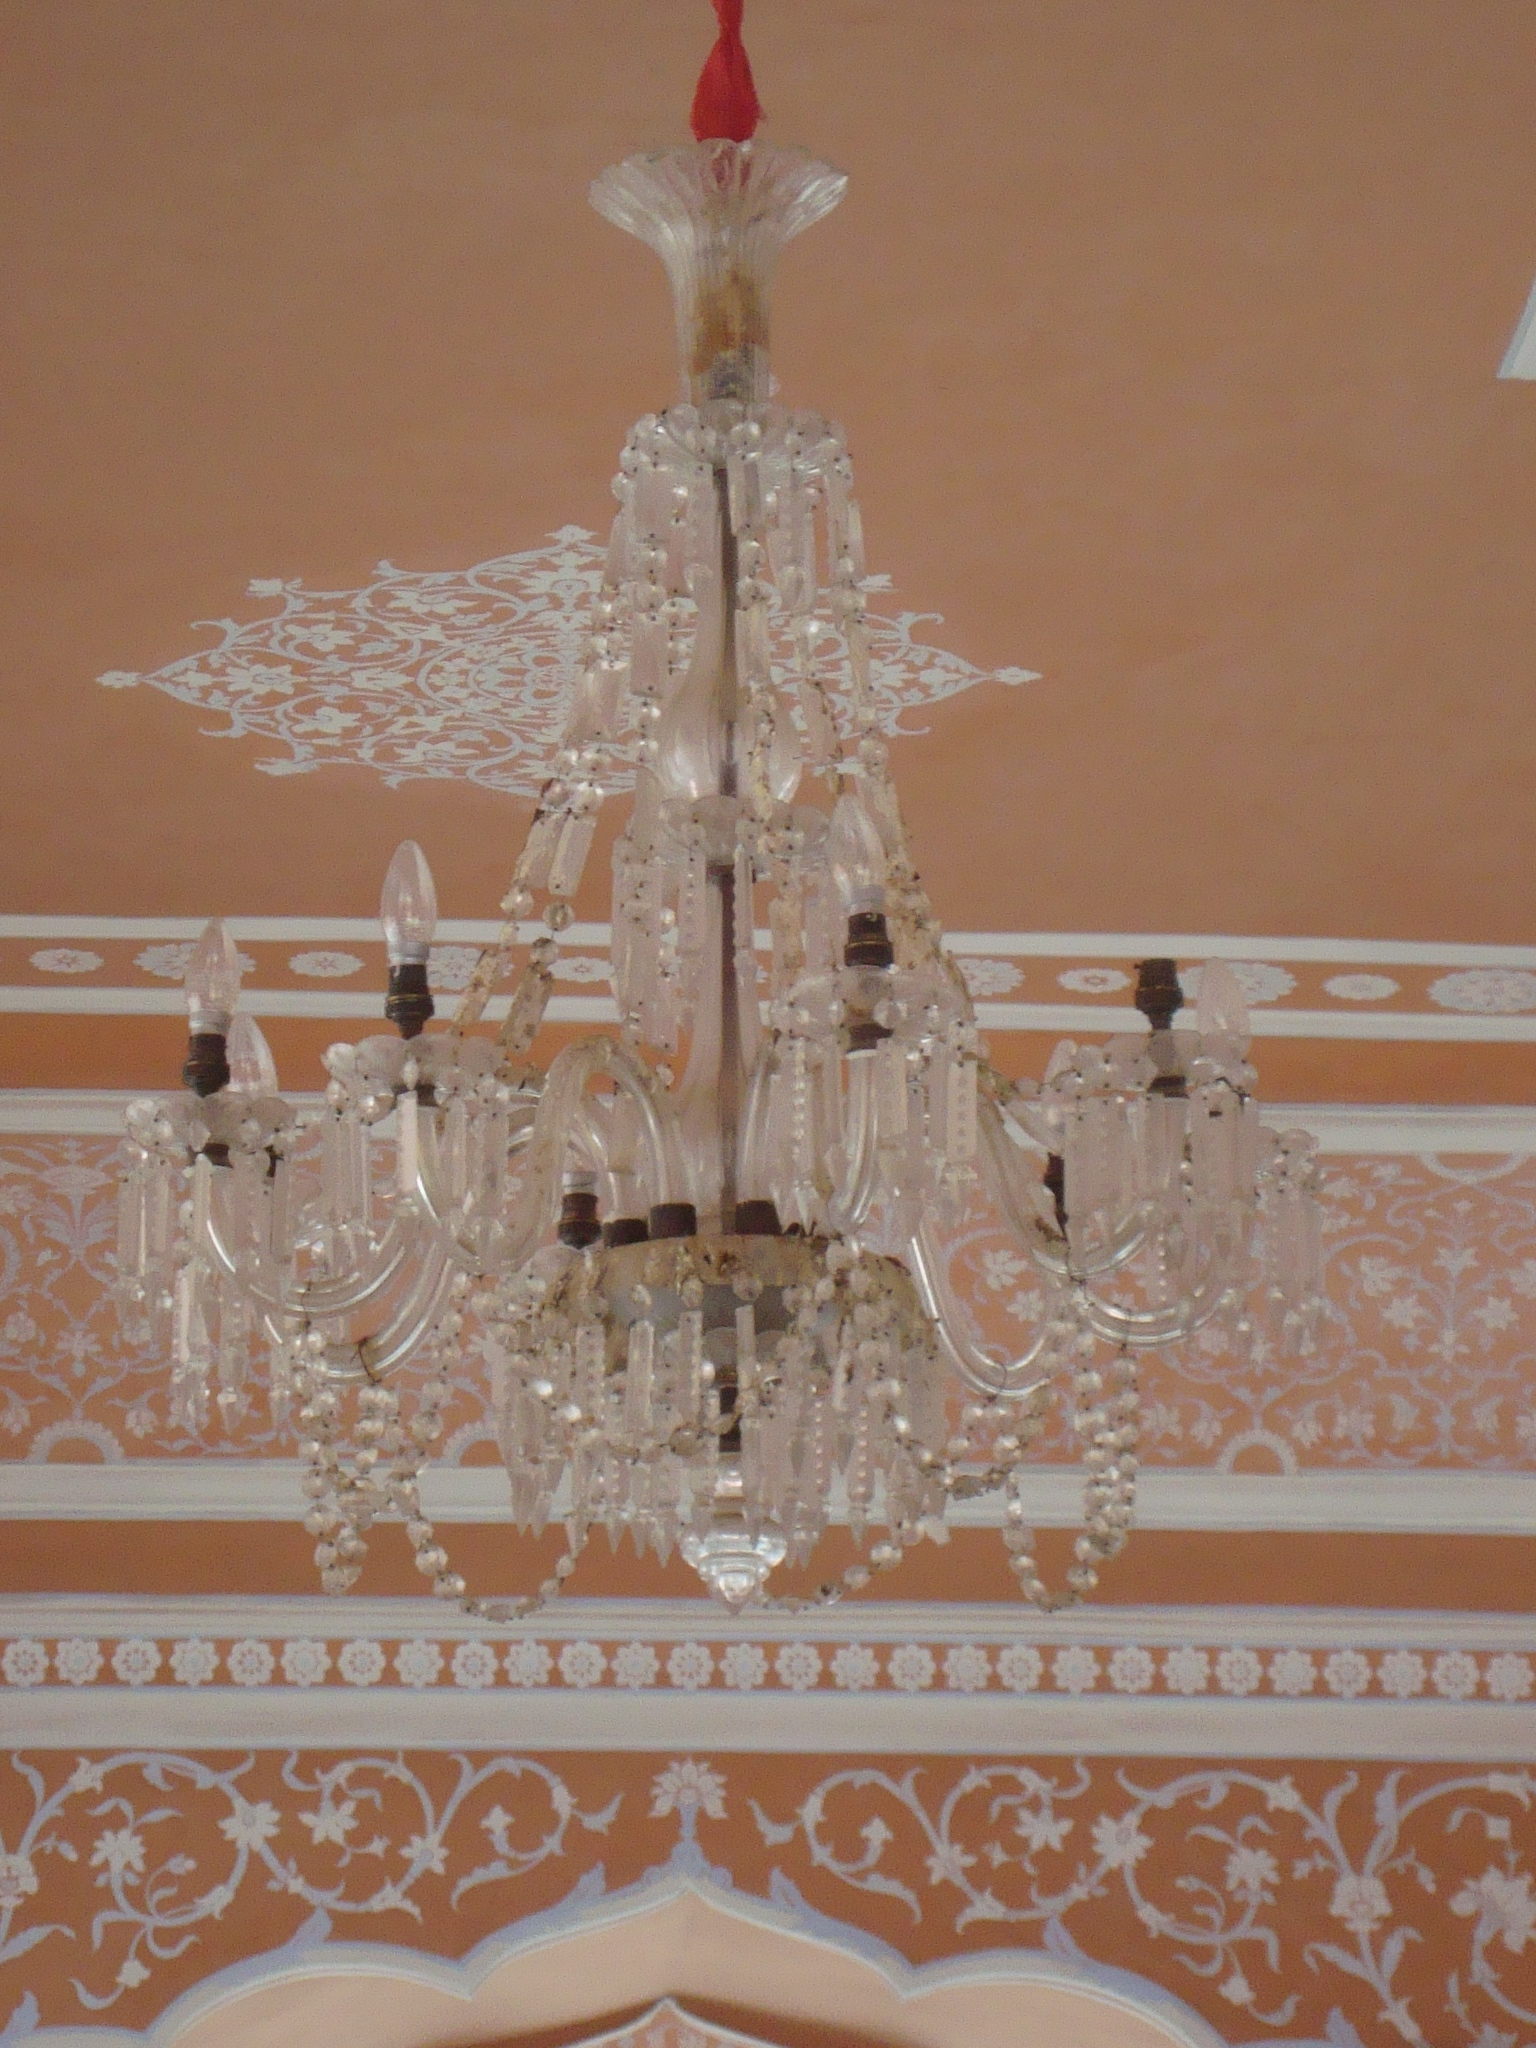 Filechandelier at diwan i khas city palace jaipur rajasthan filechandelier at diwan i khas city palace jaipur rajasthan aloadofball Gallery